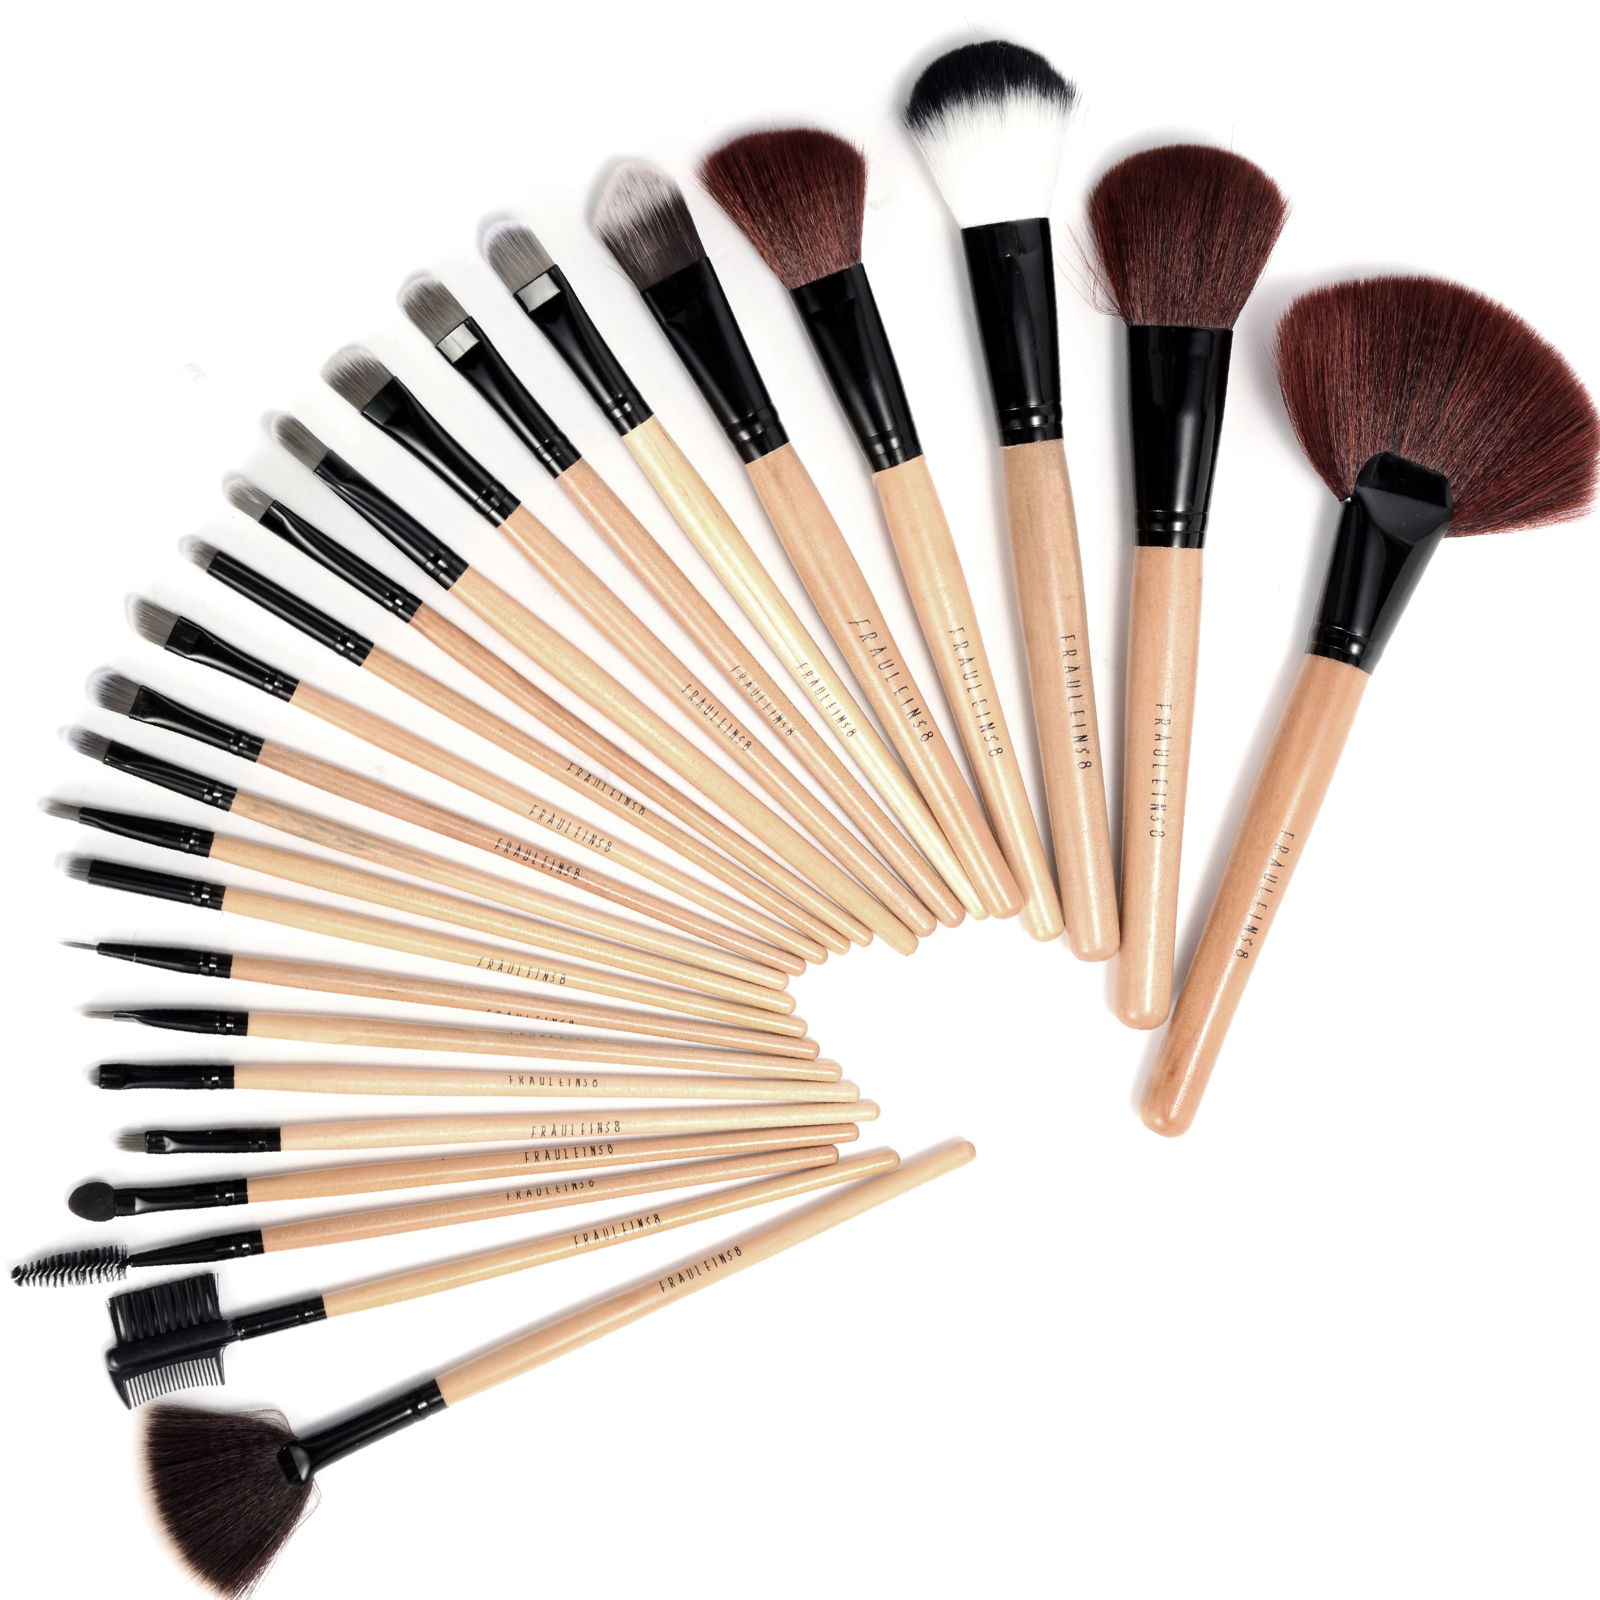 fr ulein38 24teilig kosmetik make up pinsel brush holzgriff schwarz etui set ebay. Black Bedroom Furniture Sets. Home Design Ideas